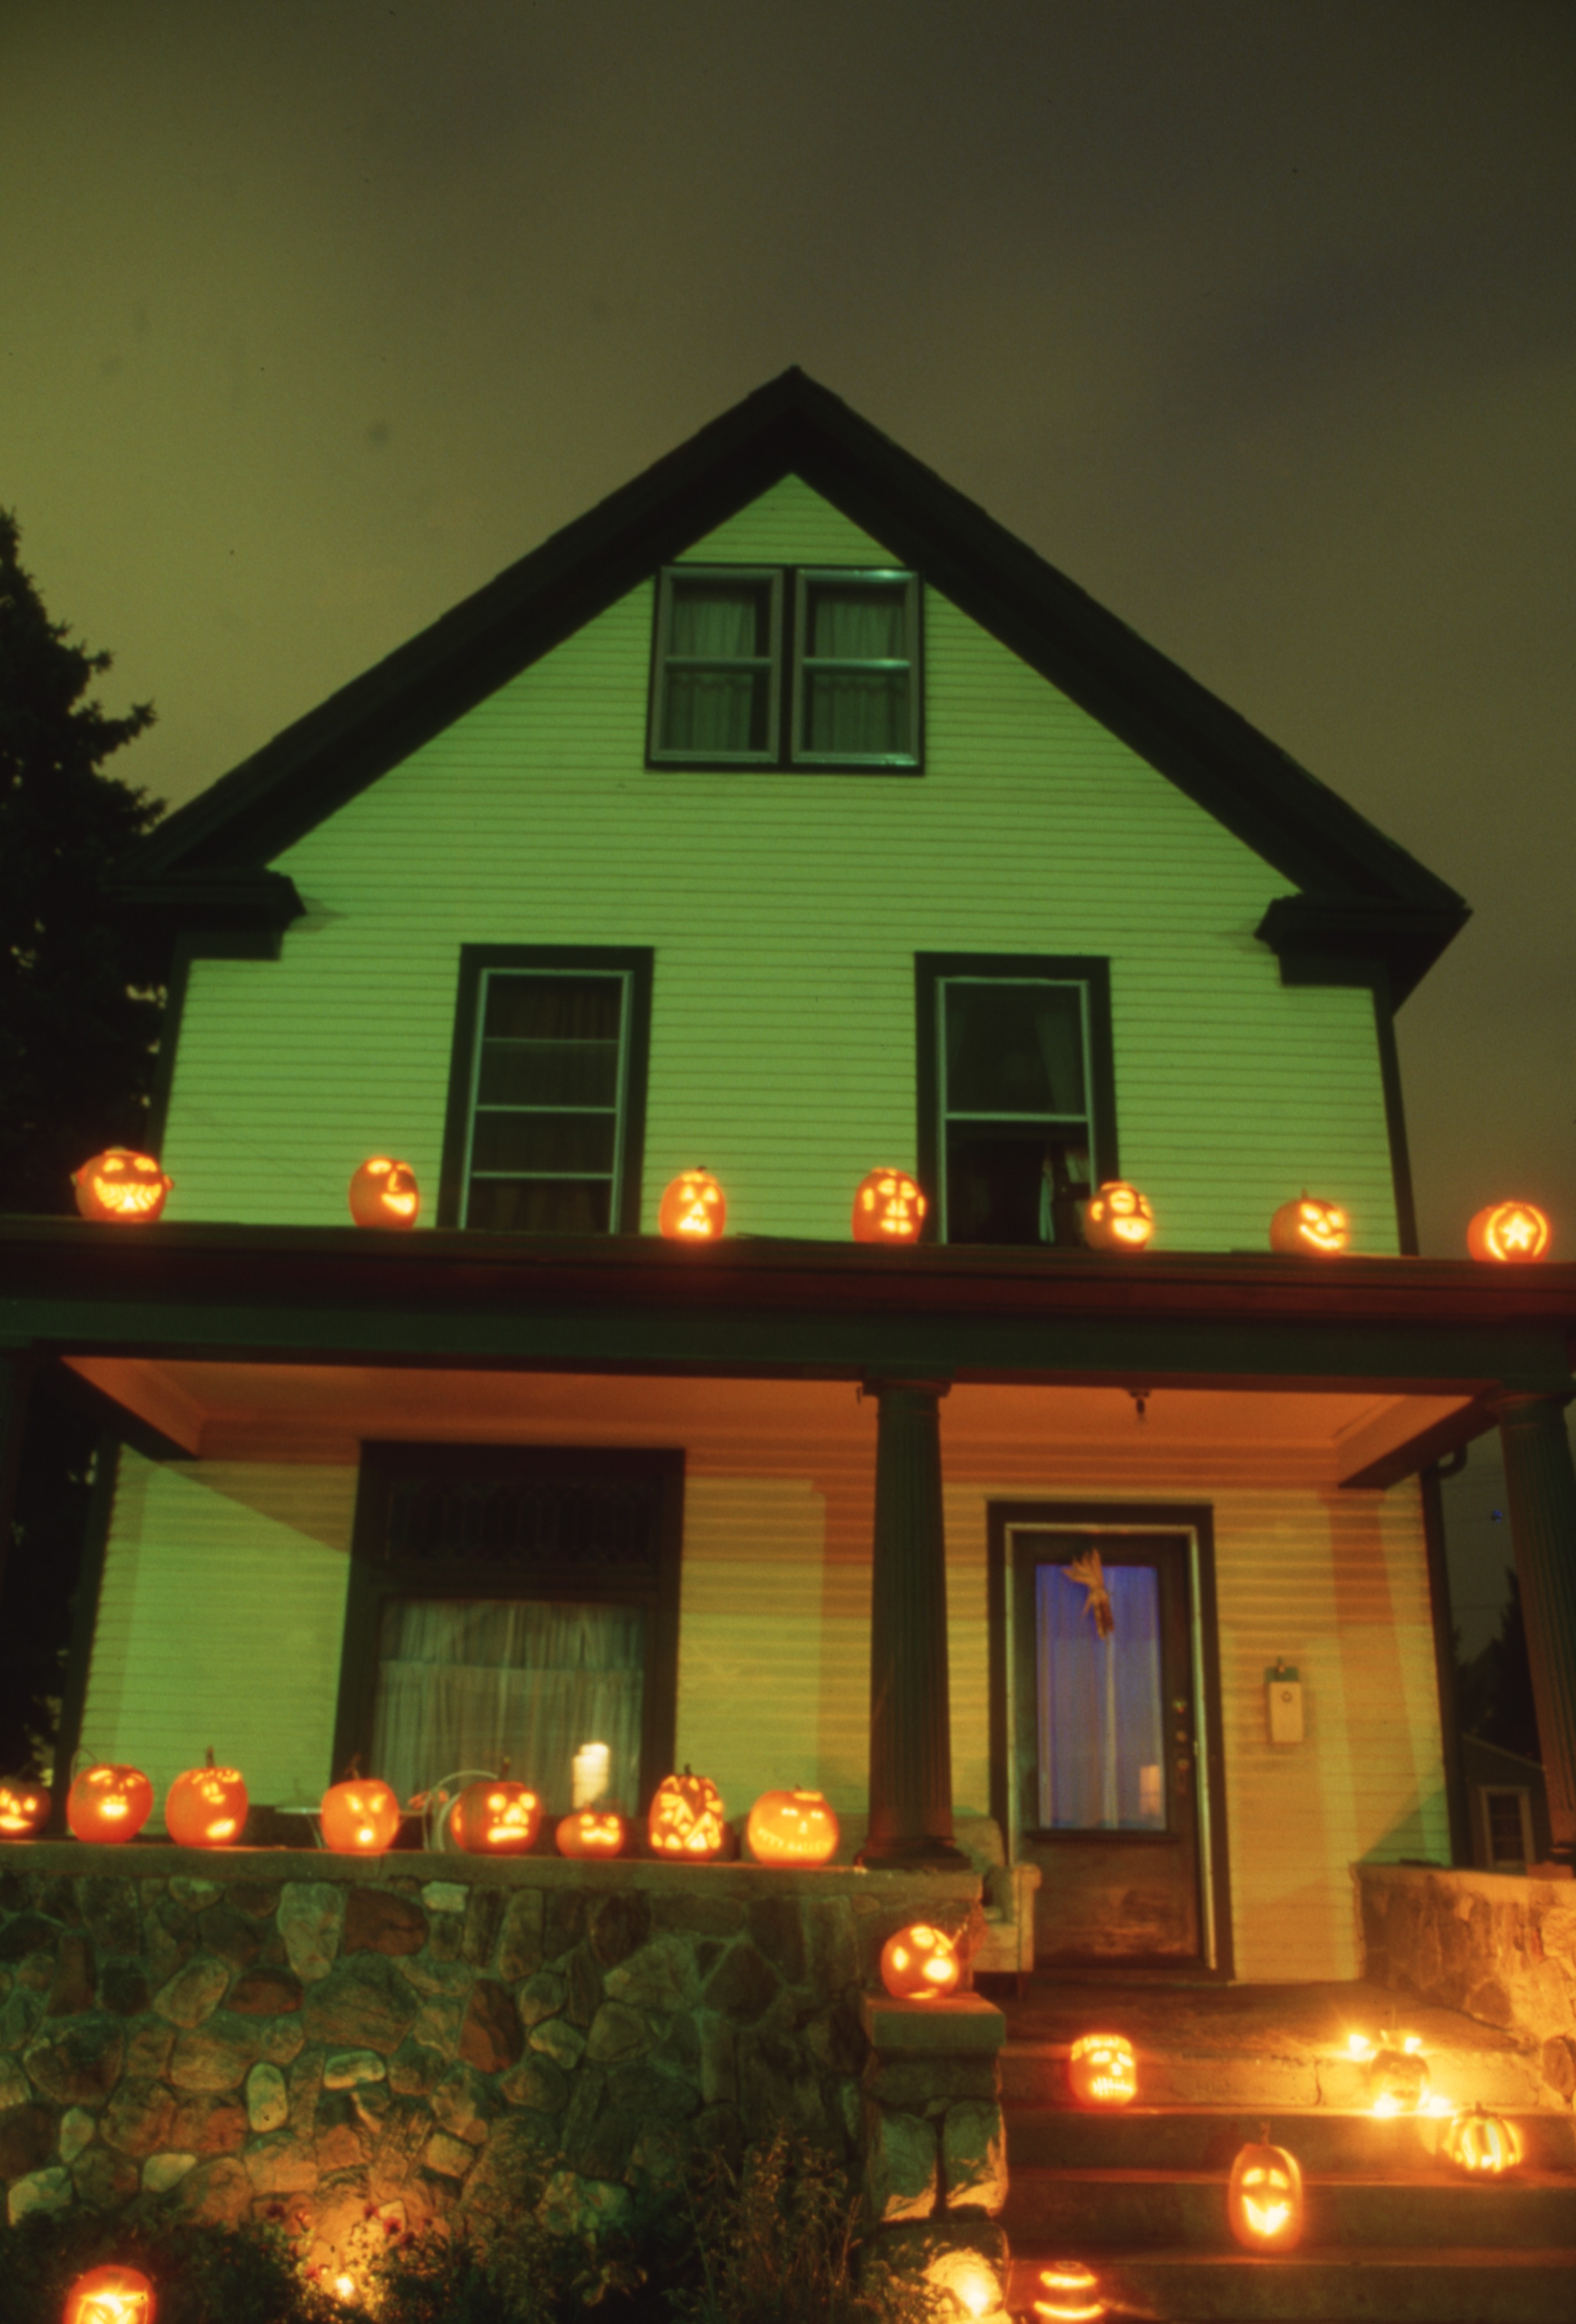 Cyndi Solski's Home Decorated With Halloween Pumpkins - 827 W. Huron Street, October 1986 image